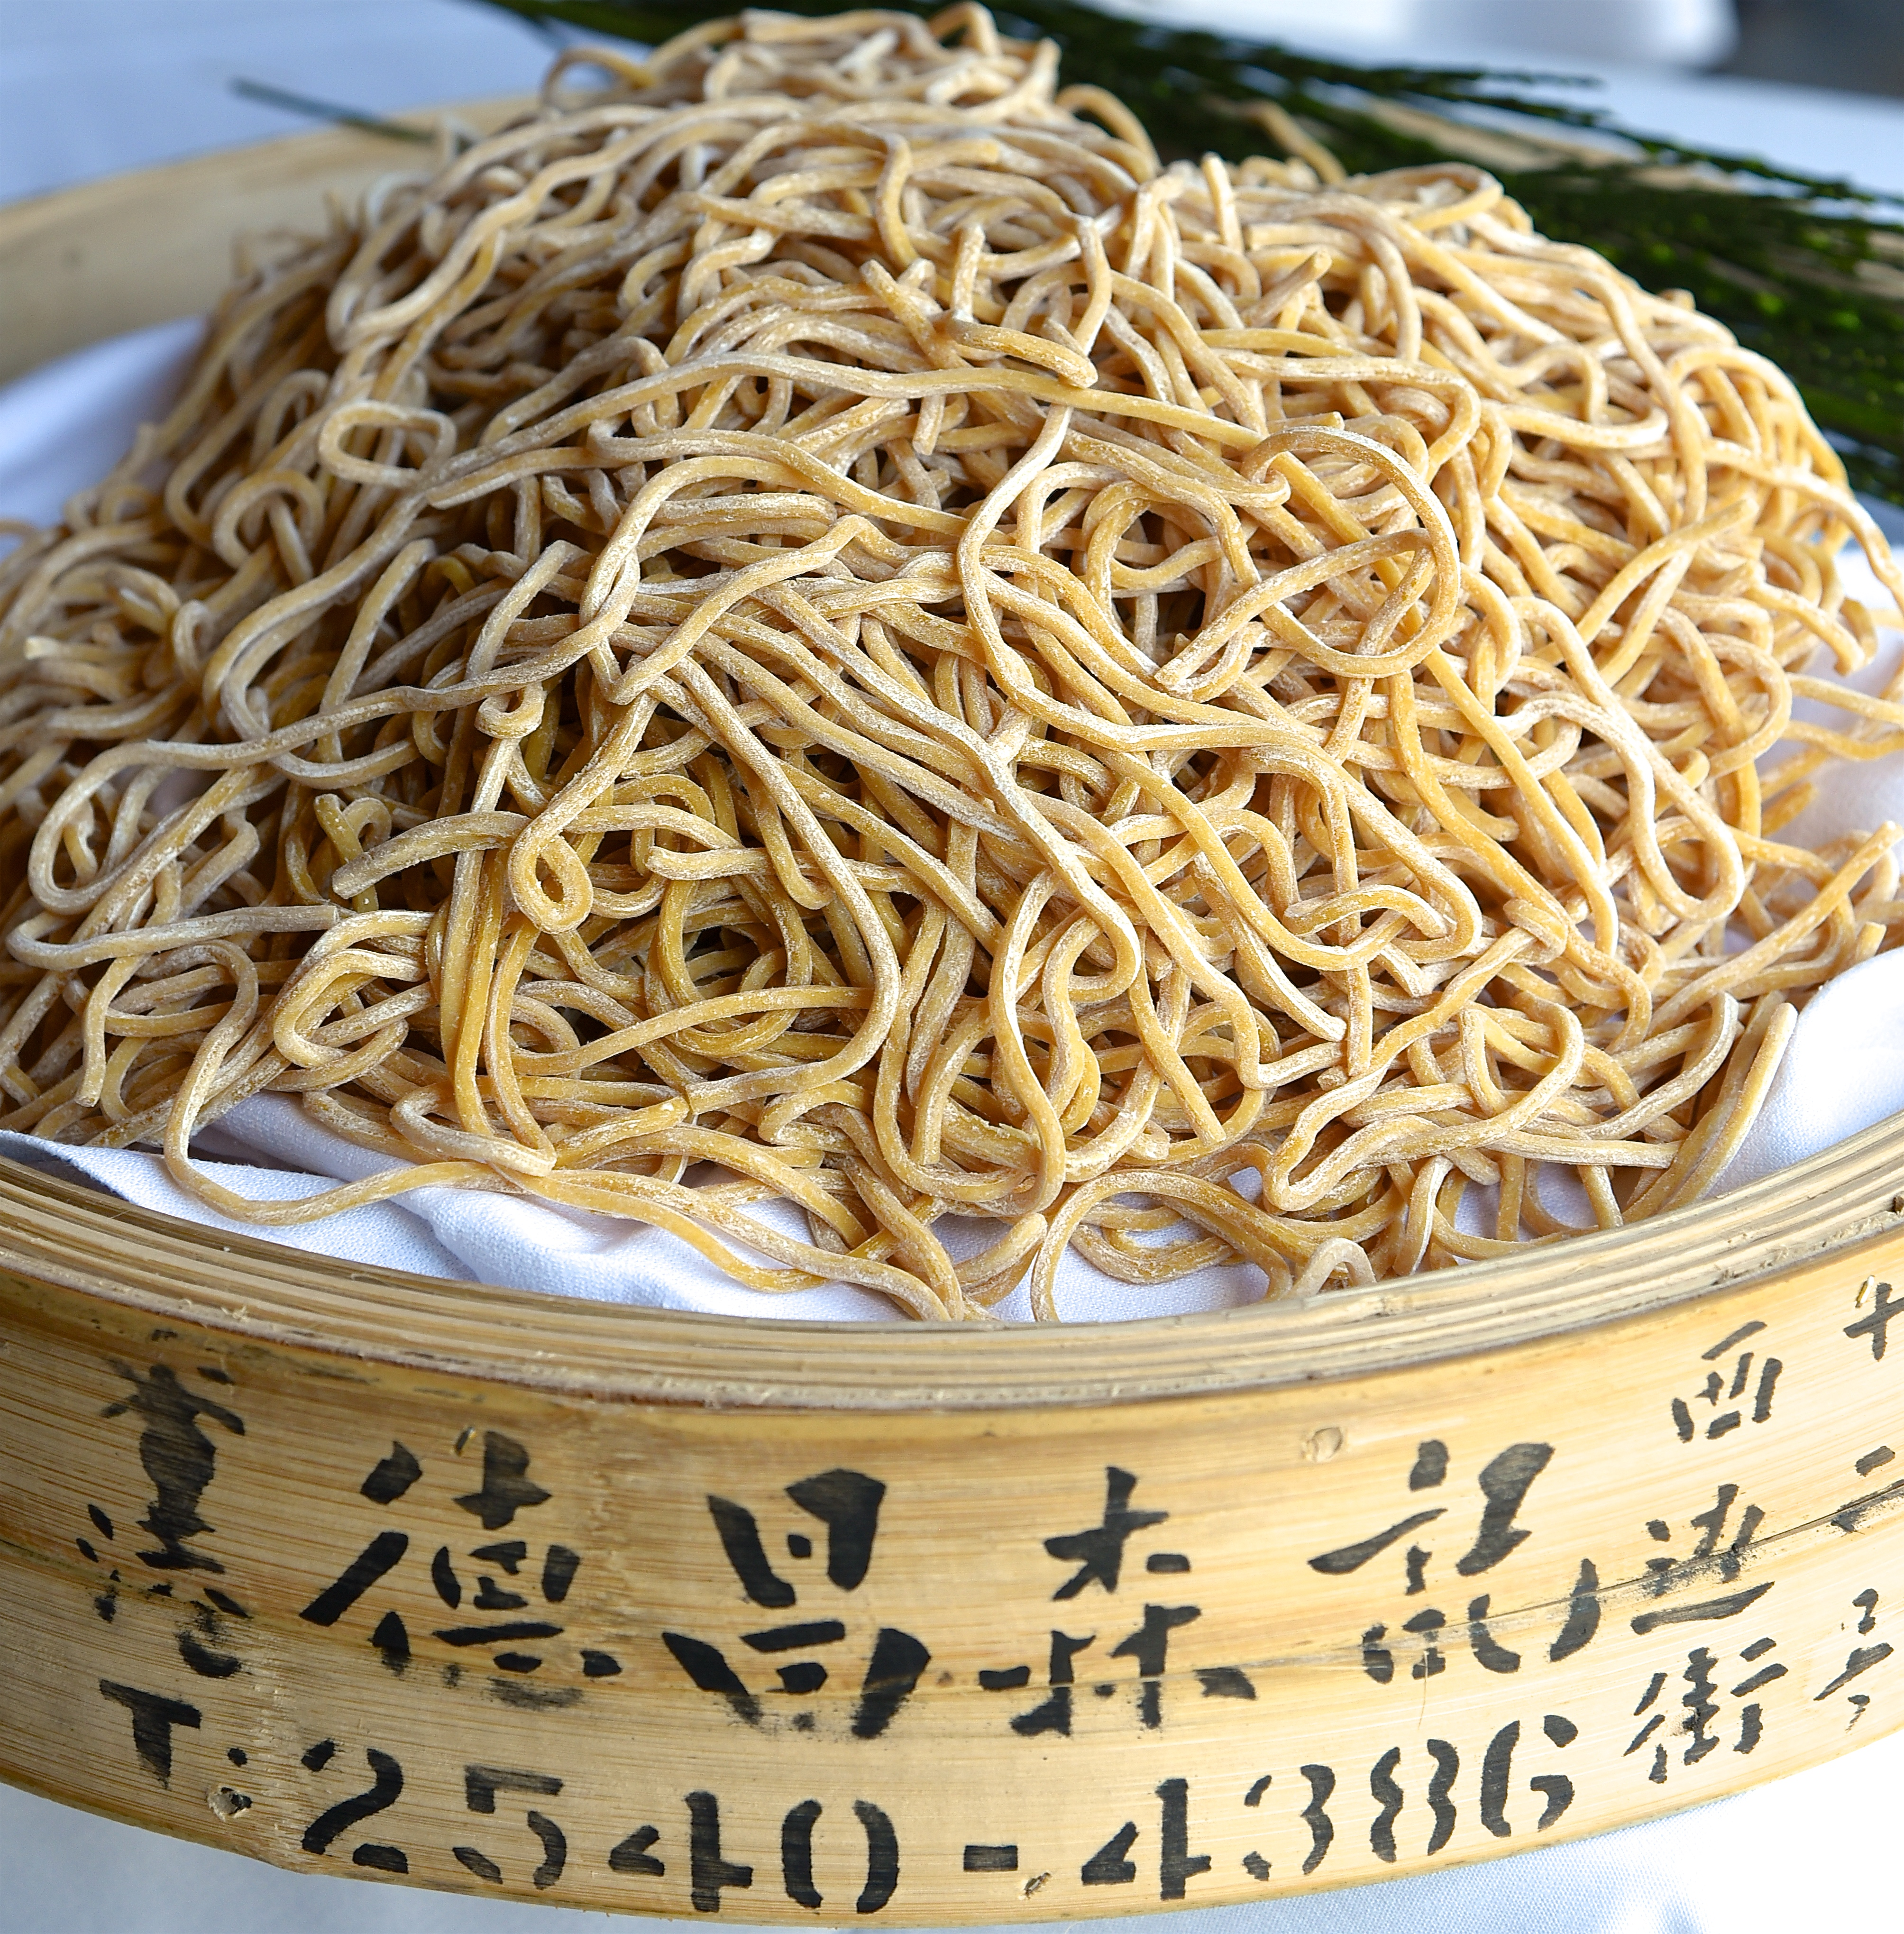 Locally made, fresh chow mein noodles